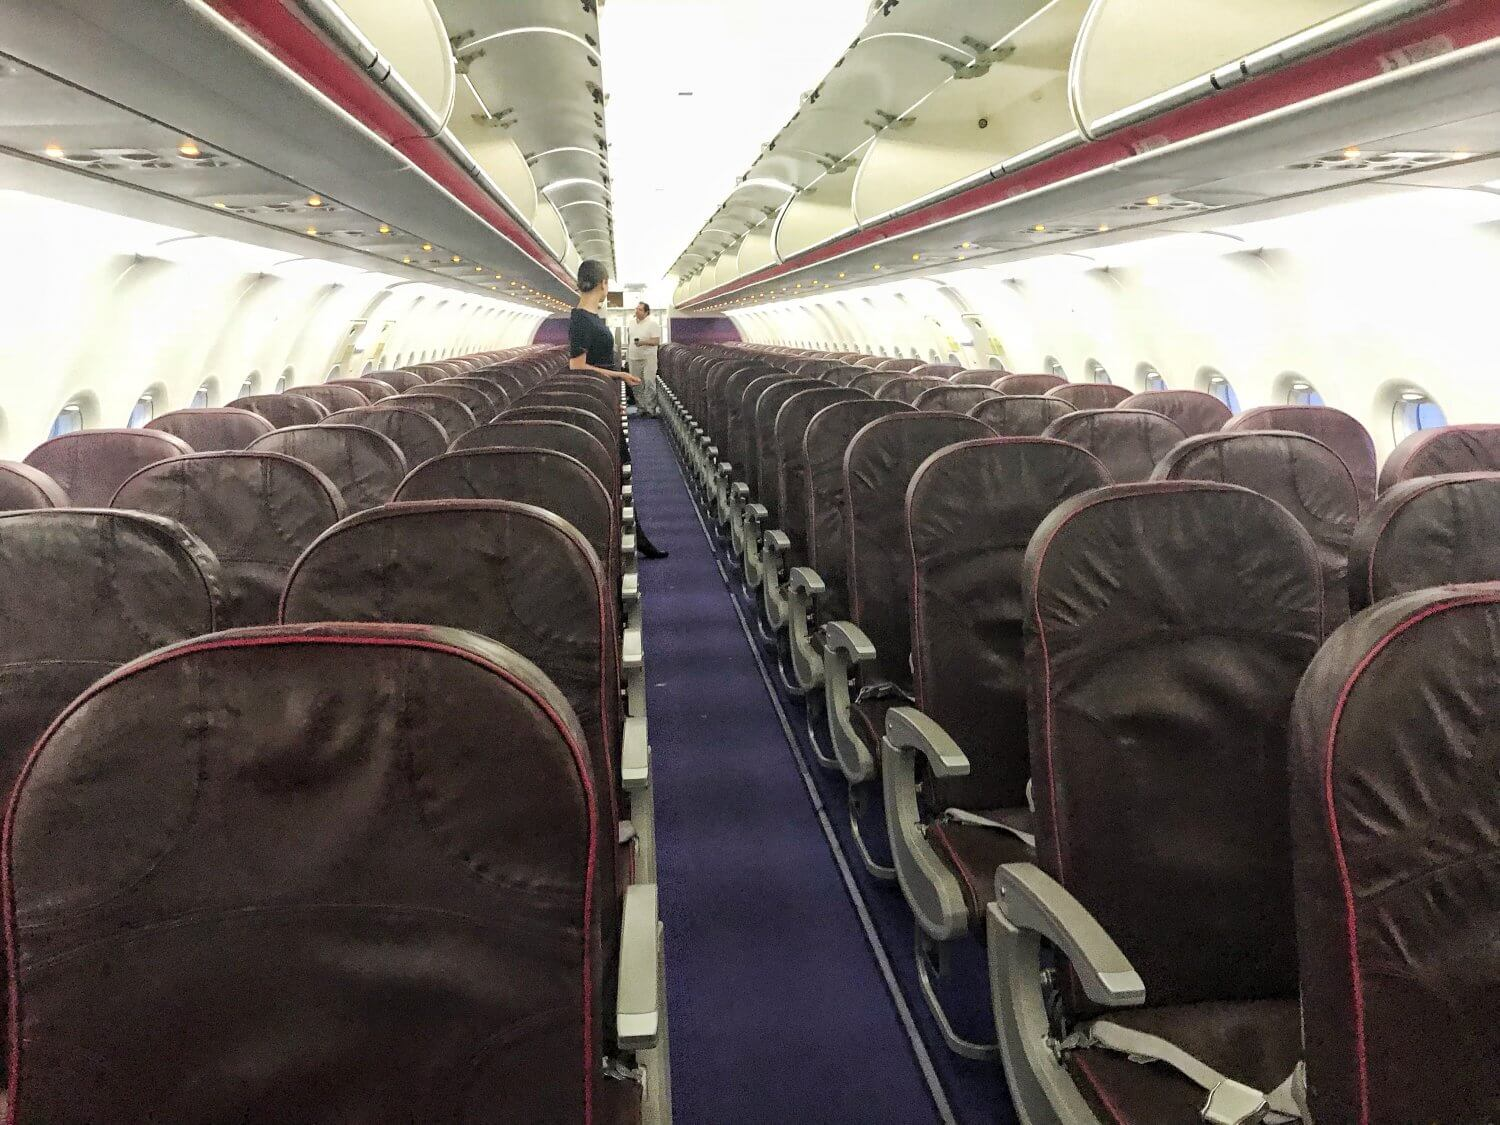 Wizz Air review: the inside of a Wizz Air plane